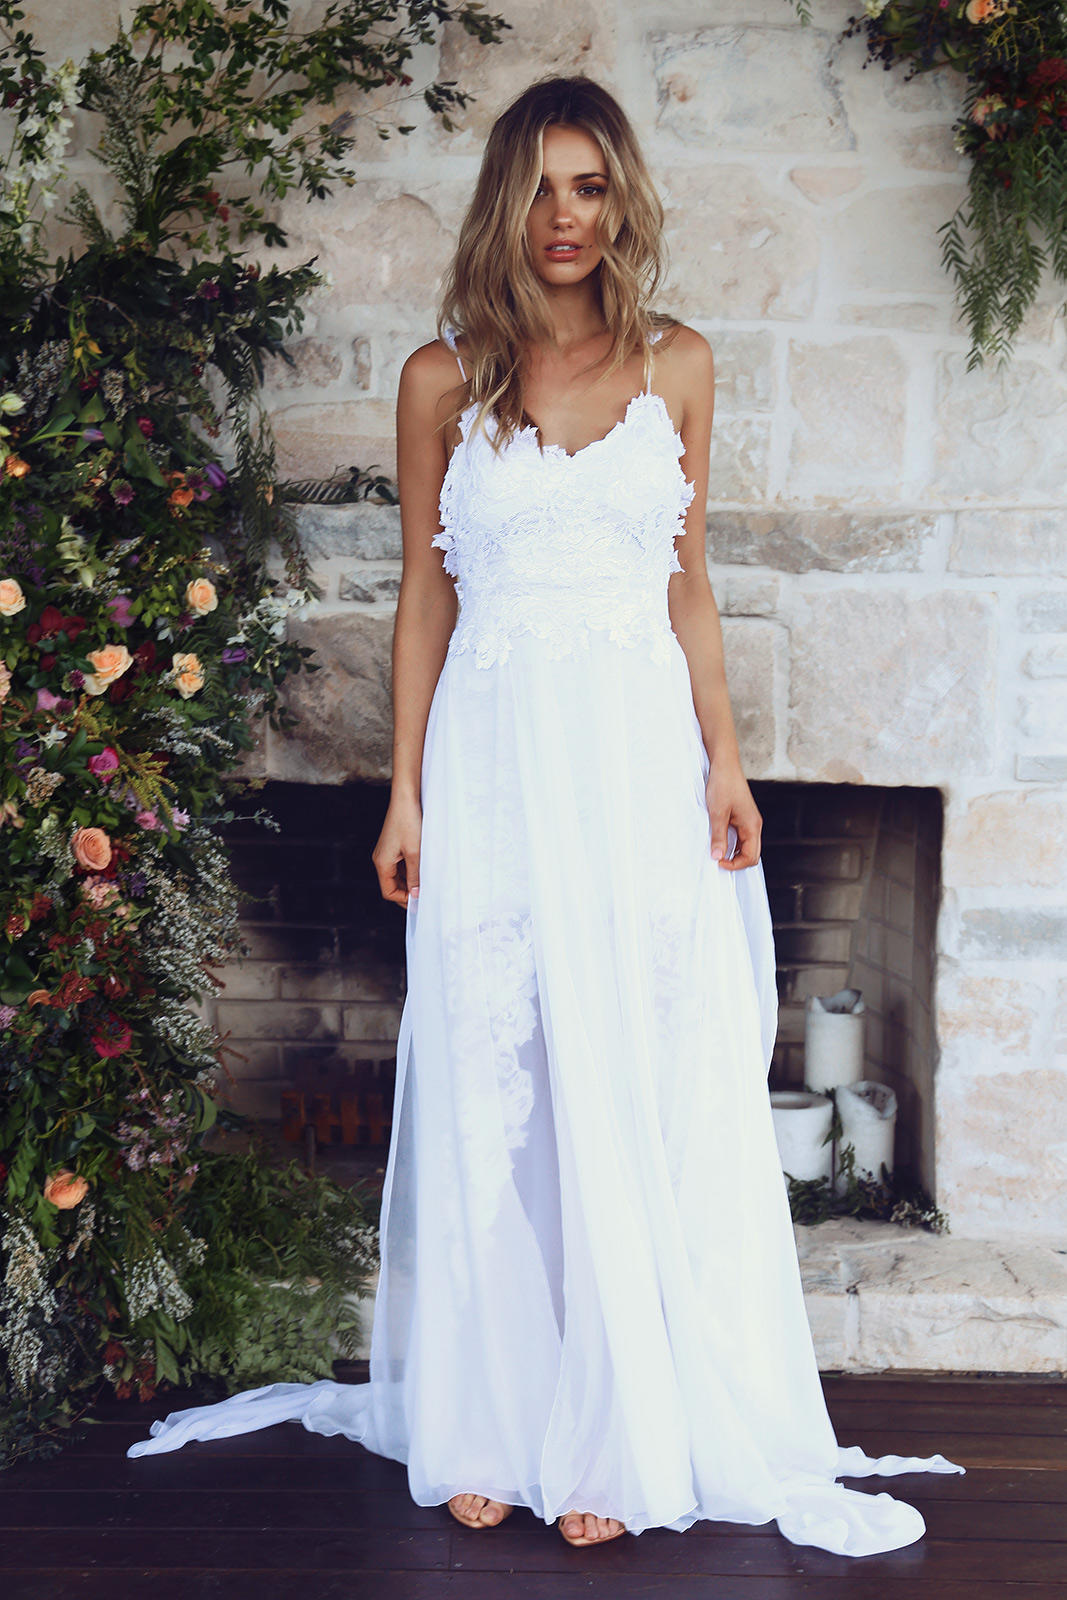 Behold: The Most Popular Wedding Dress on the Internet RN